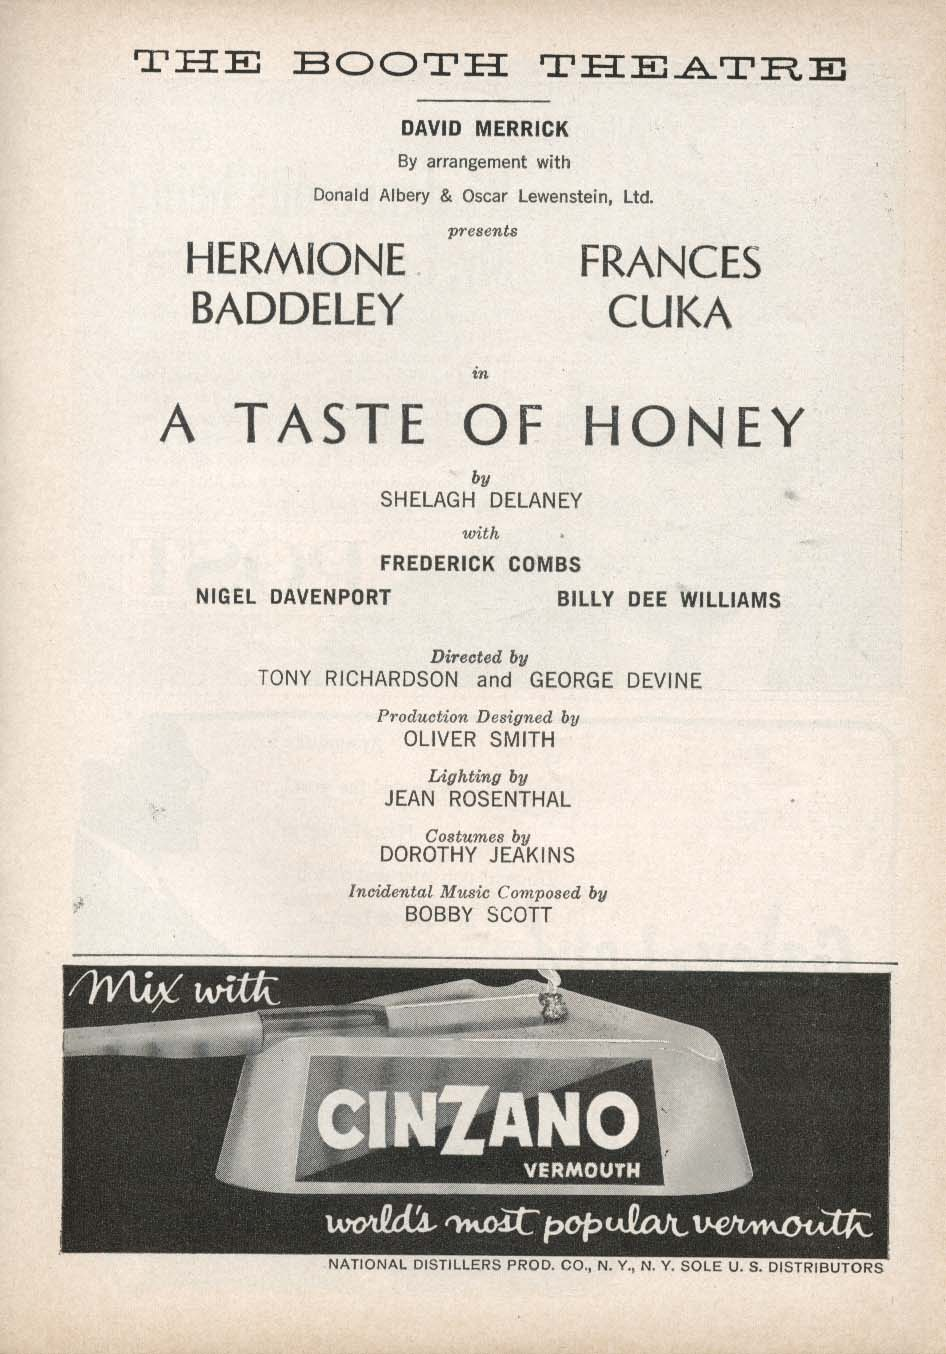 A Taste of Honey Playbill 5/22/61 Hermione Baddeley Frances Cuka Nigel Davenport